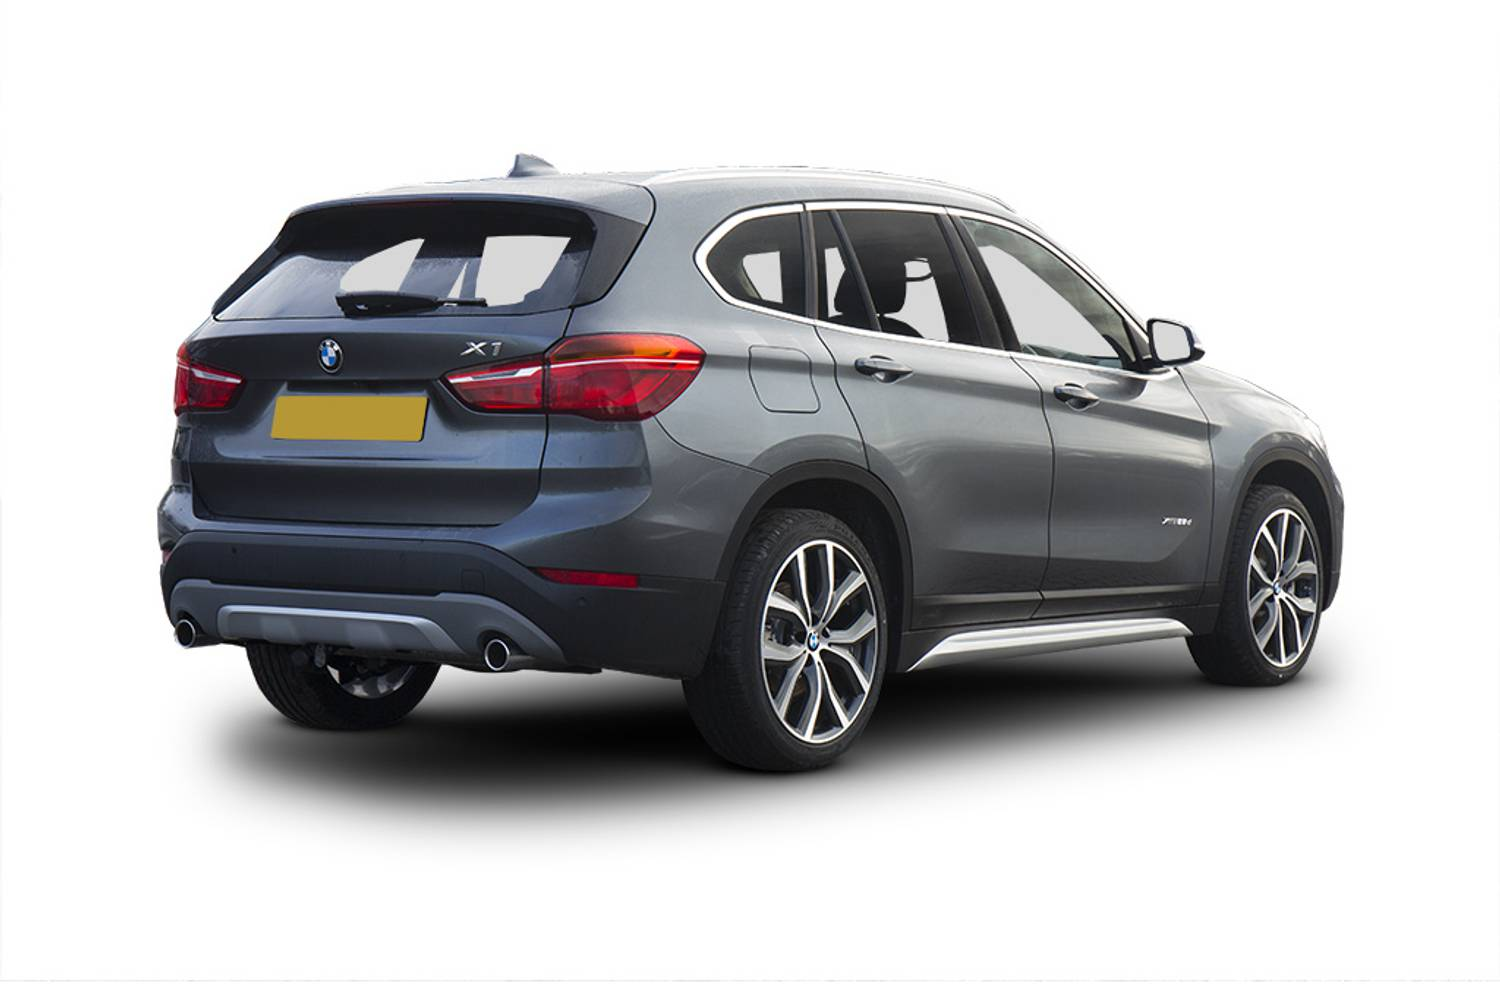 new bmw x1 diesel estate xdrive 18d se 5 door step auto 2015 for sale. Black Bedroom Furniture Sets. Home Design Ideas